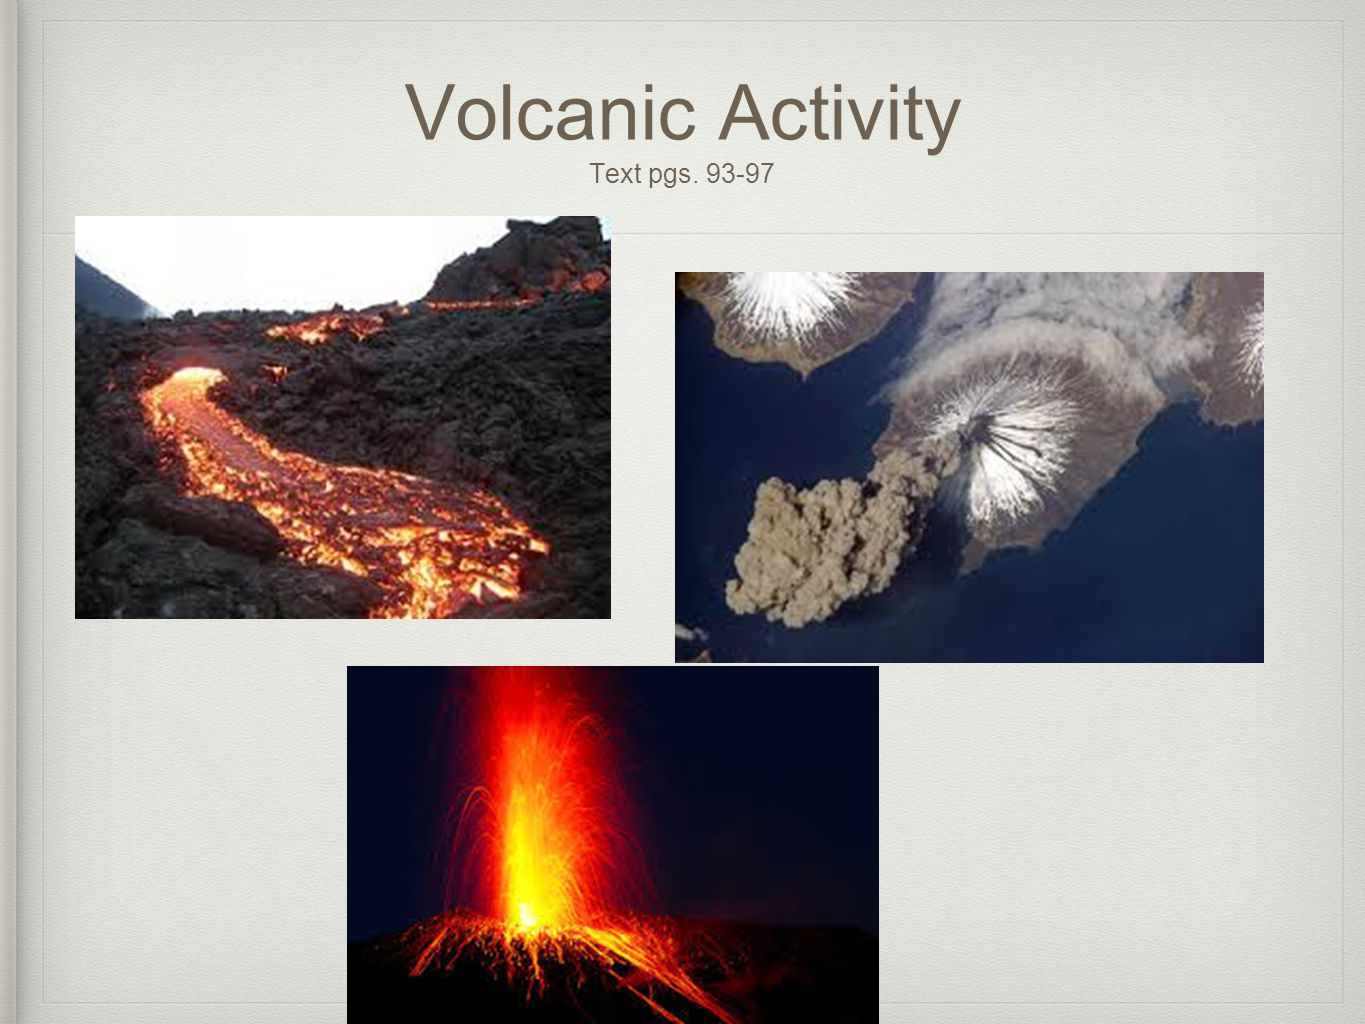 Volcanic Activity Text pgs. 93-97